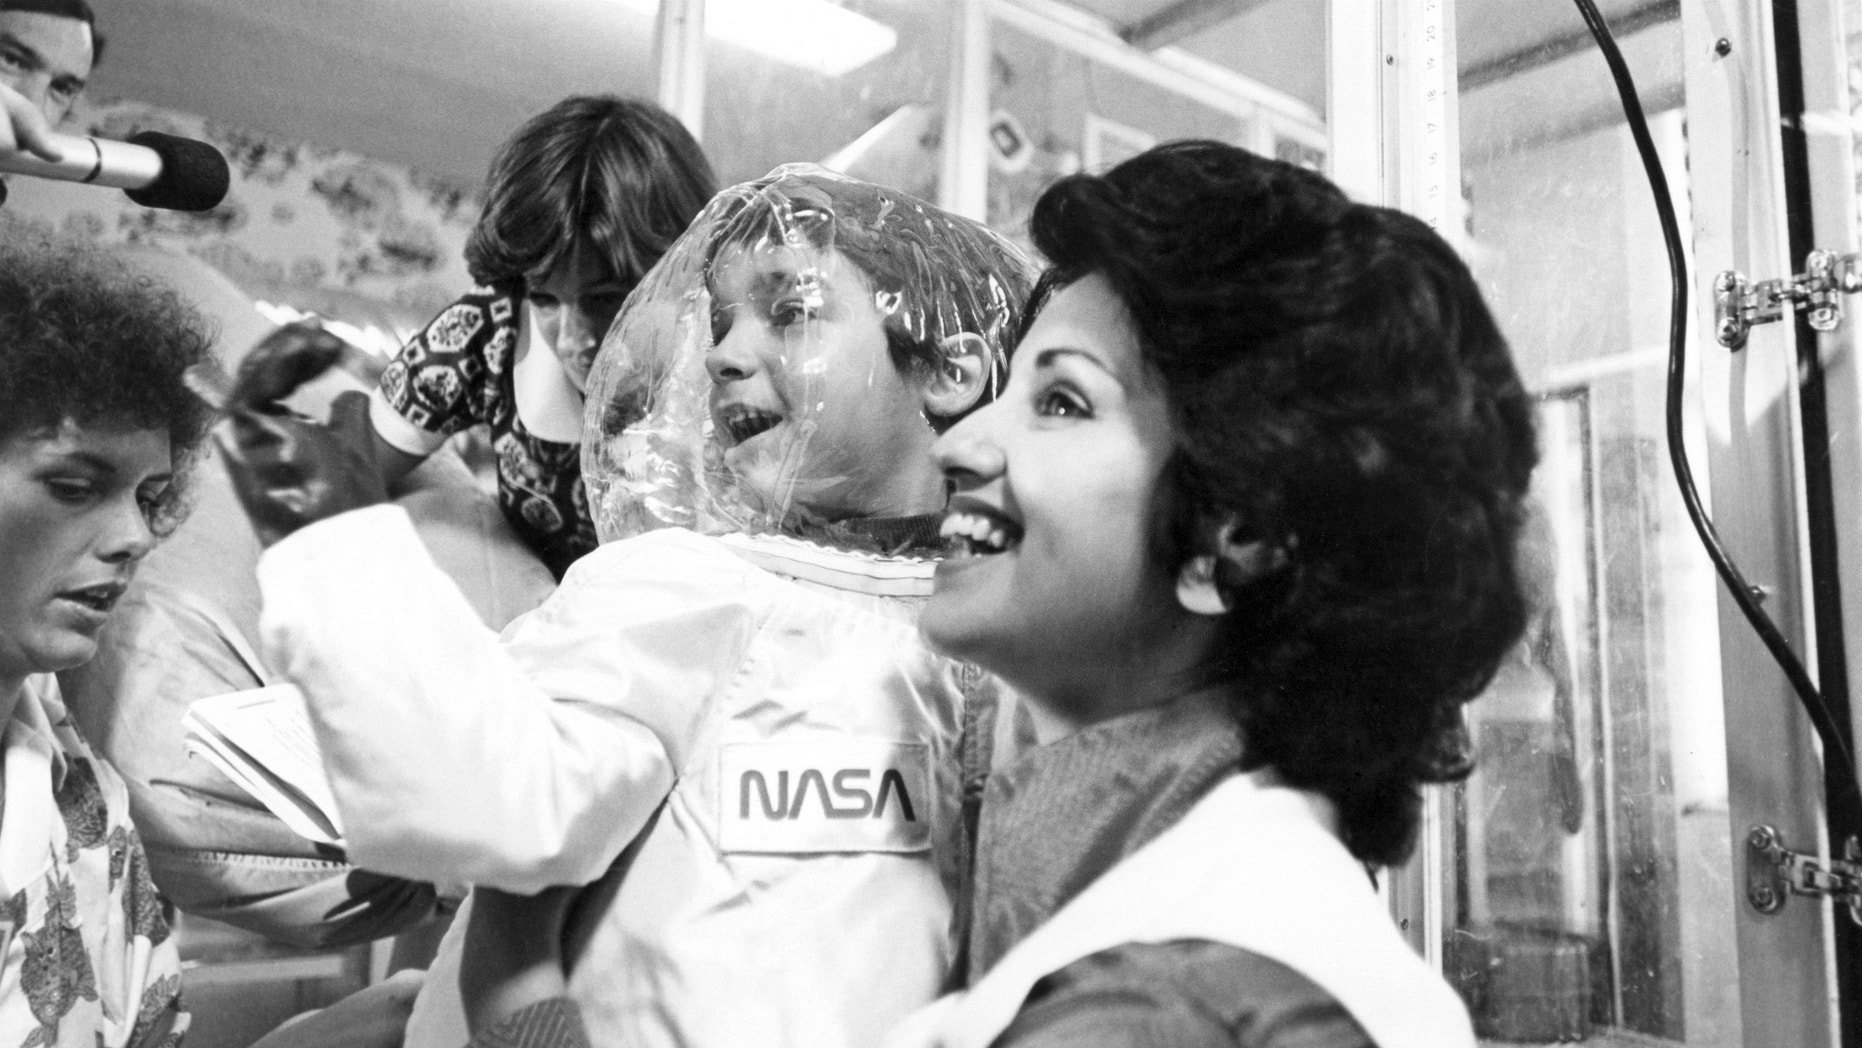 Carol Ann holds her son David while he wears a suit specially designed by NASA, on July 29, 1977.